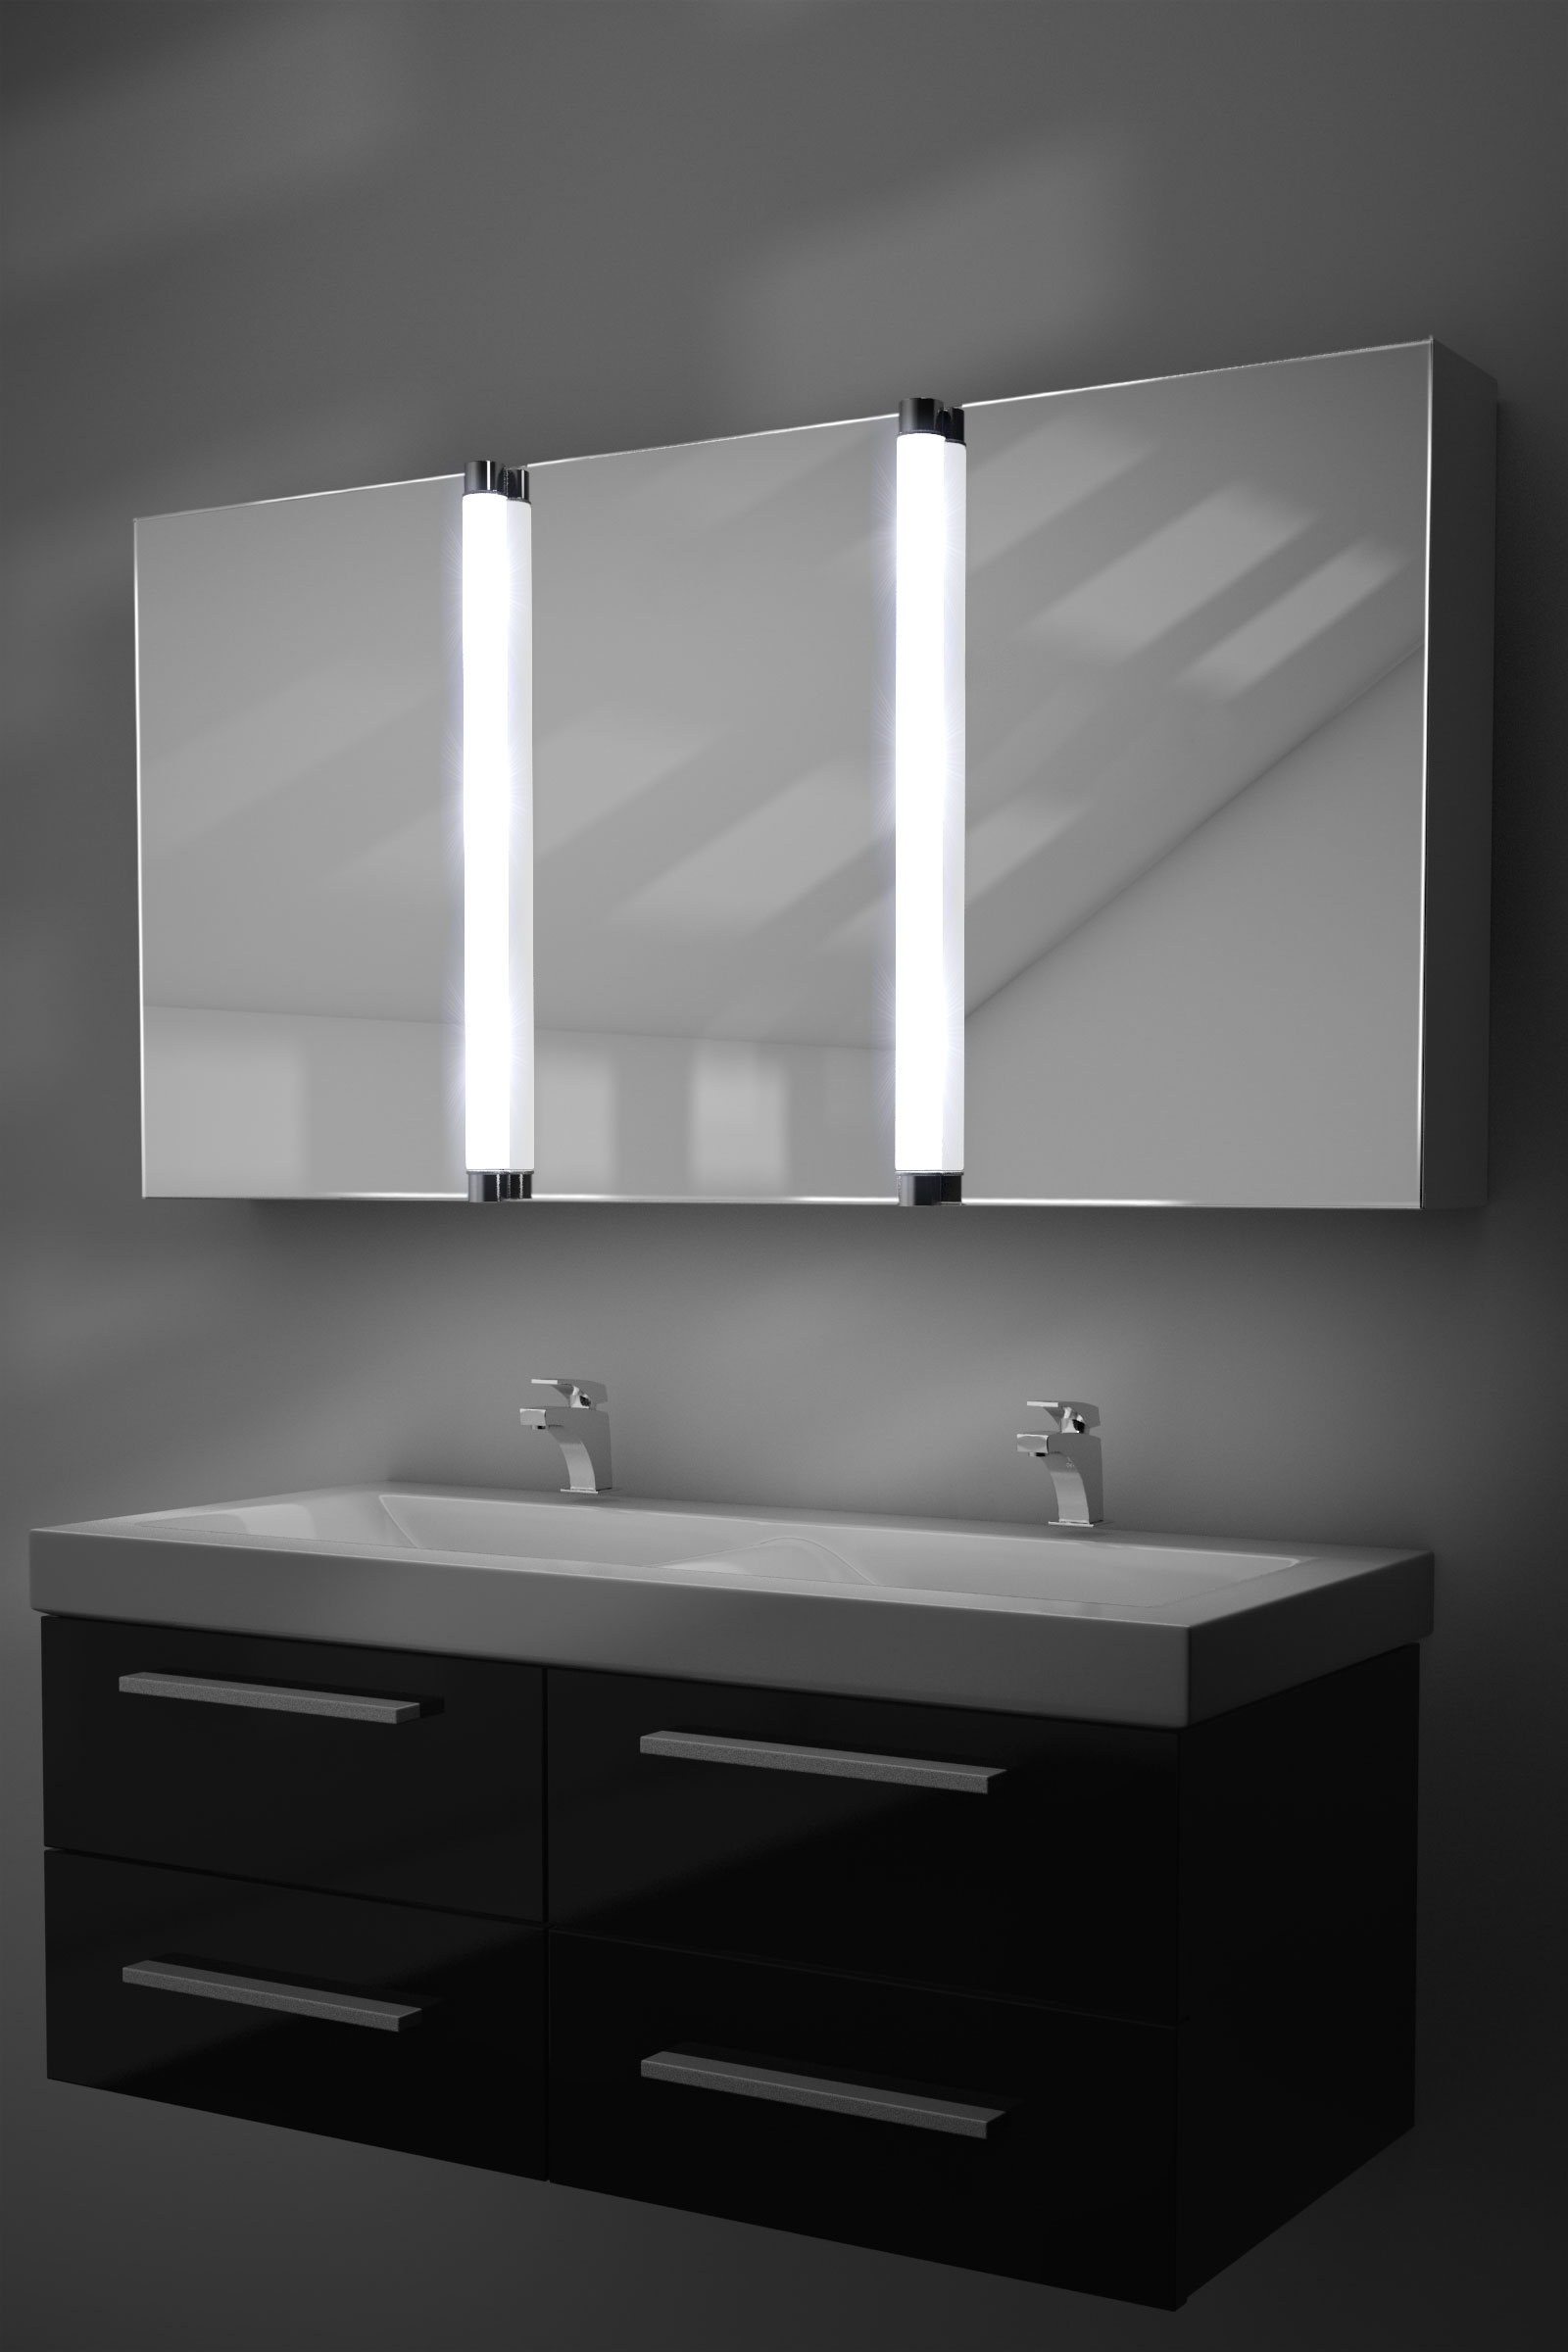 Bathroom mirror cabinets with light and shaver socket - Bathroom Mirror Cabinet With Shaver Socket And Light